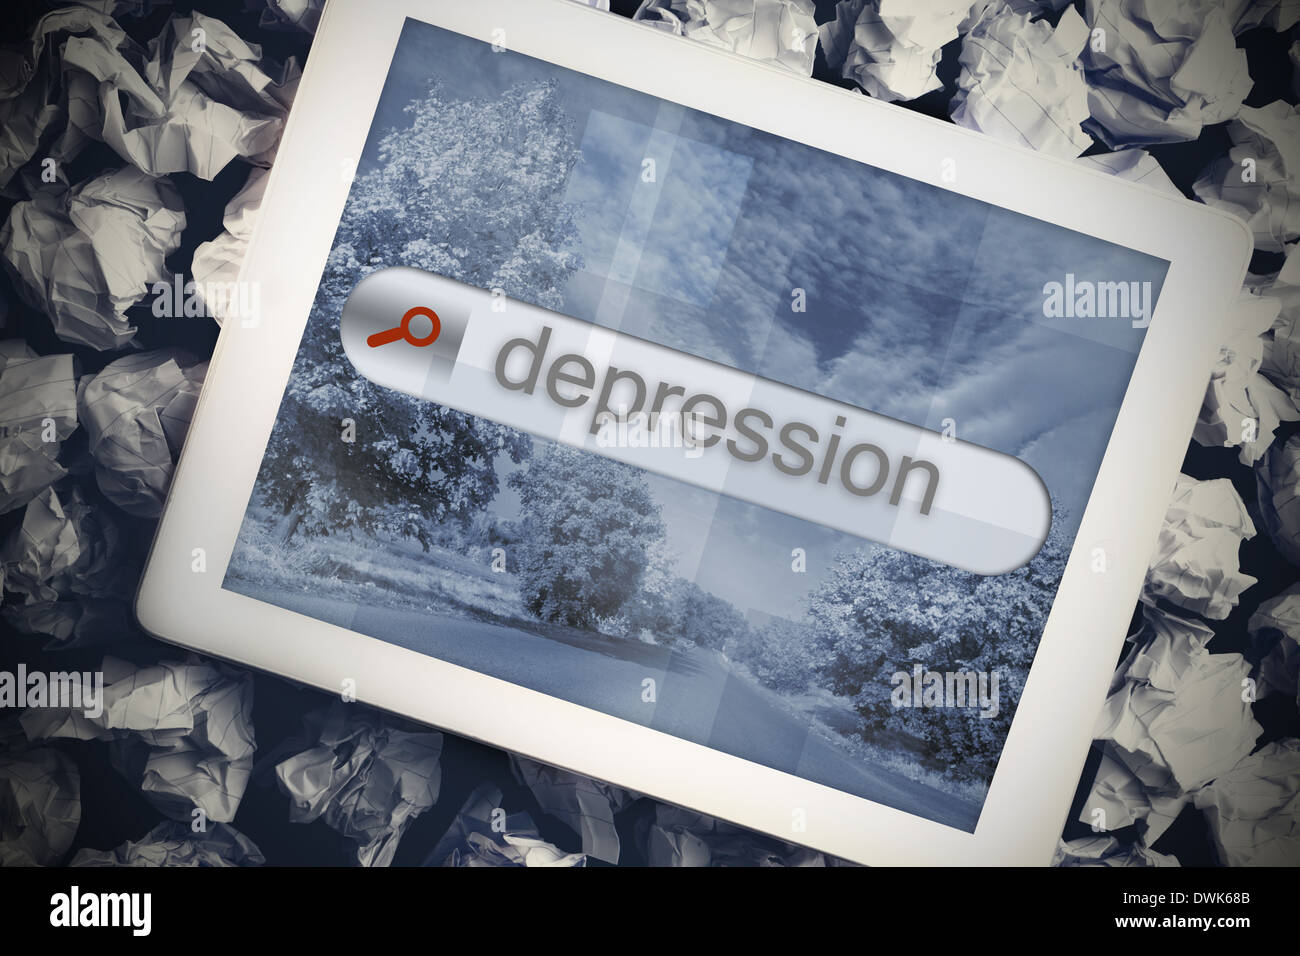 Depression in search bar on tablet screen - Stock Image